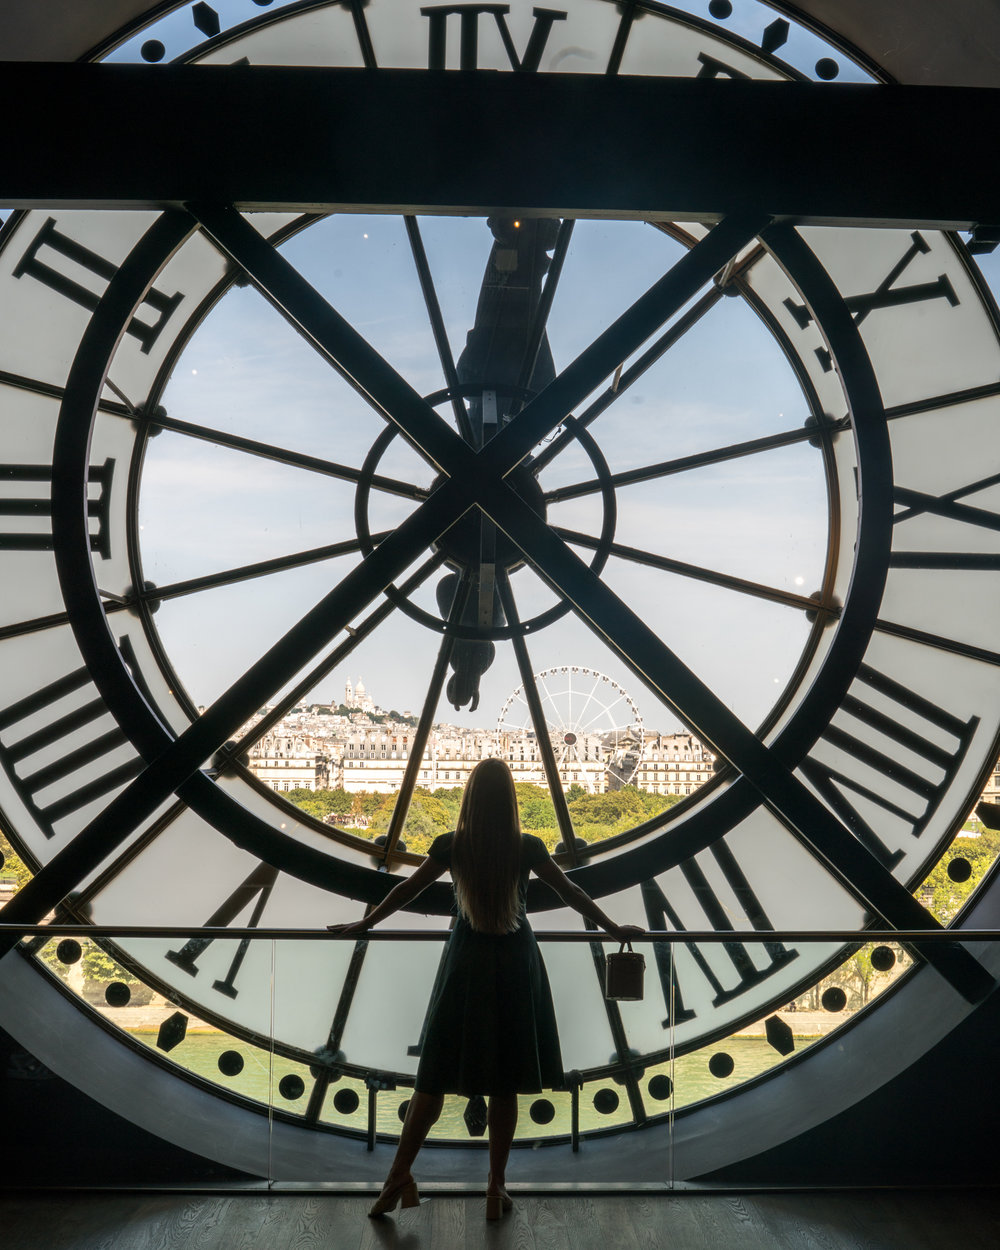 The clock in the Musee D'Orsay in Paris